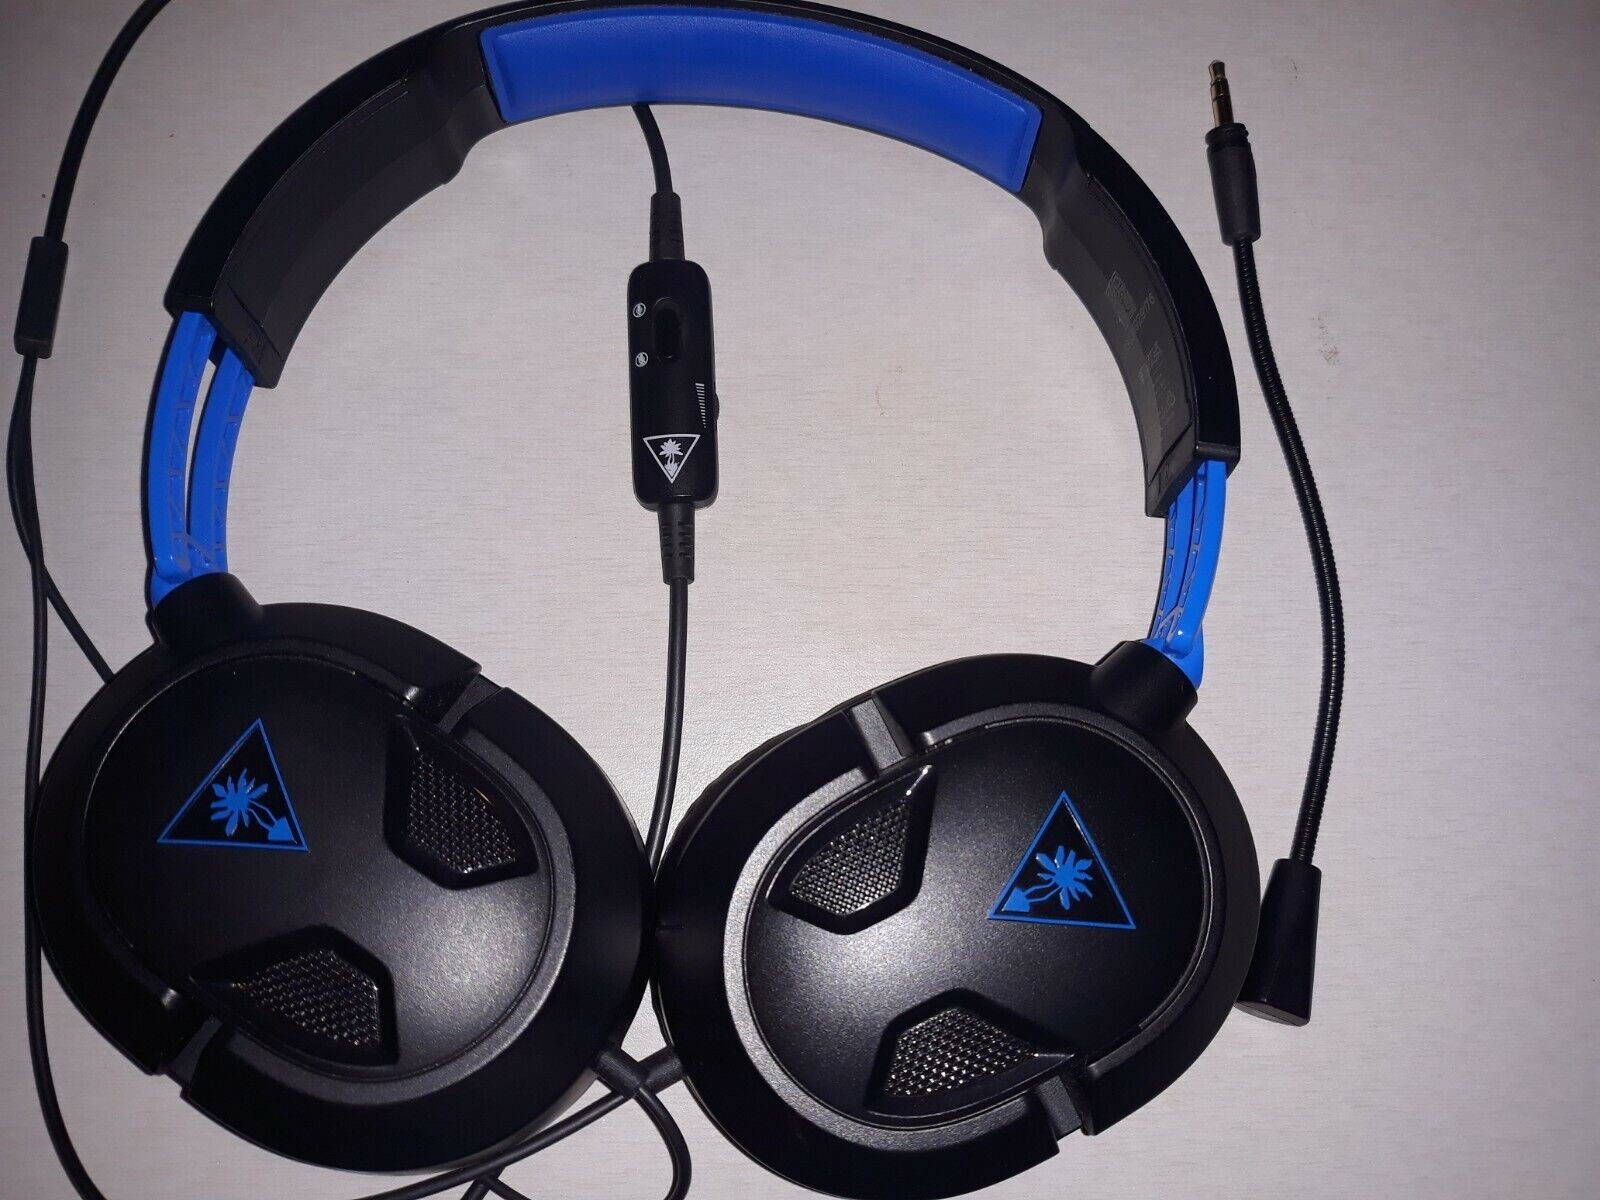 Turtle Beach Ear Force Recon 50P Stereo Gaming Headset PS4 Pro Slim PC XB Tested - $8.99